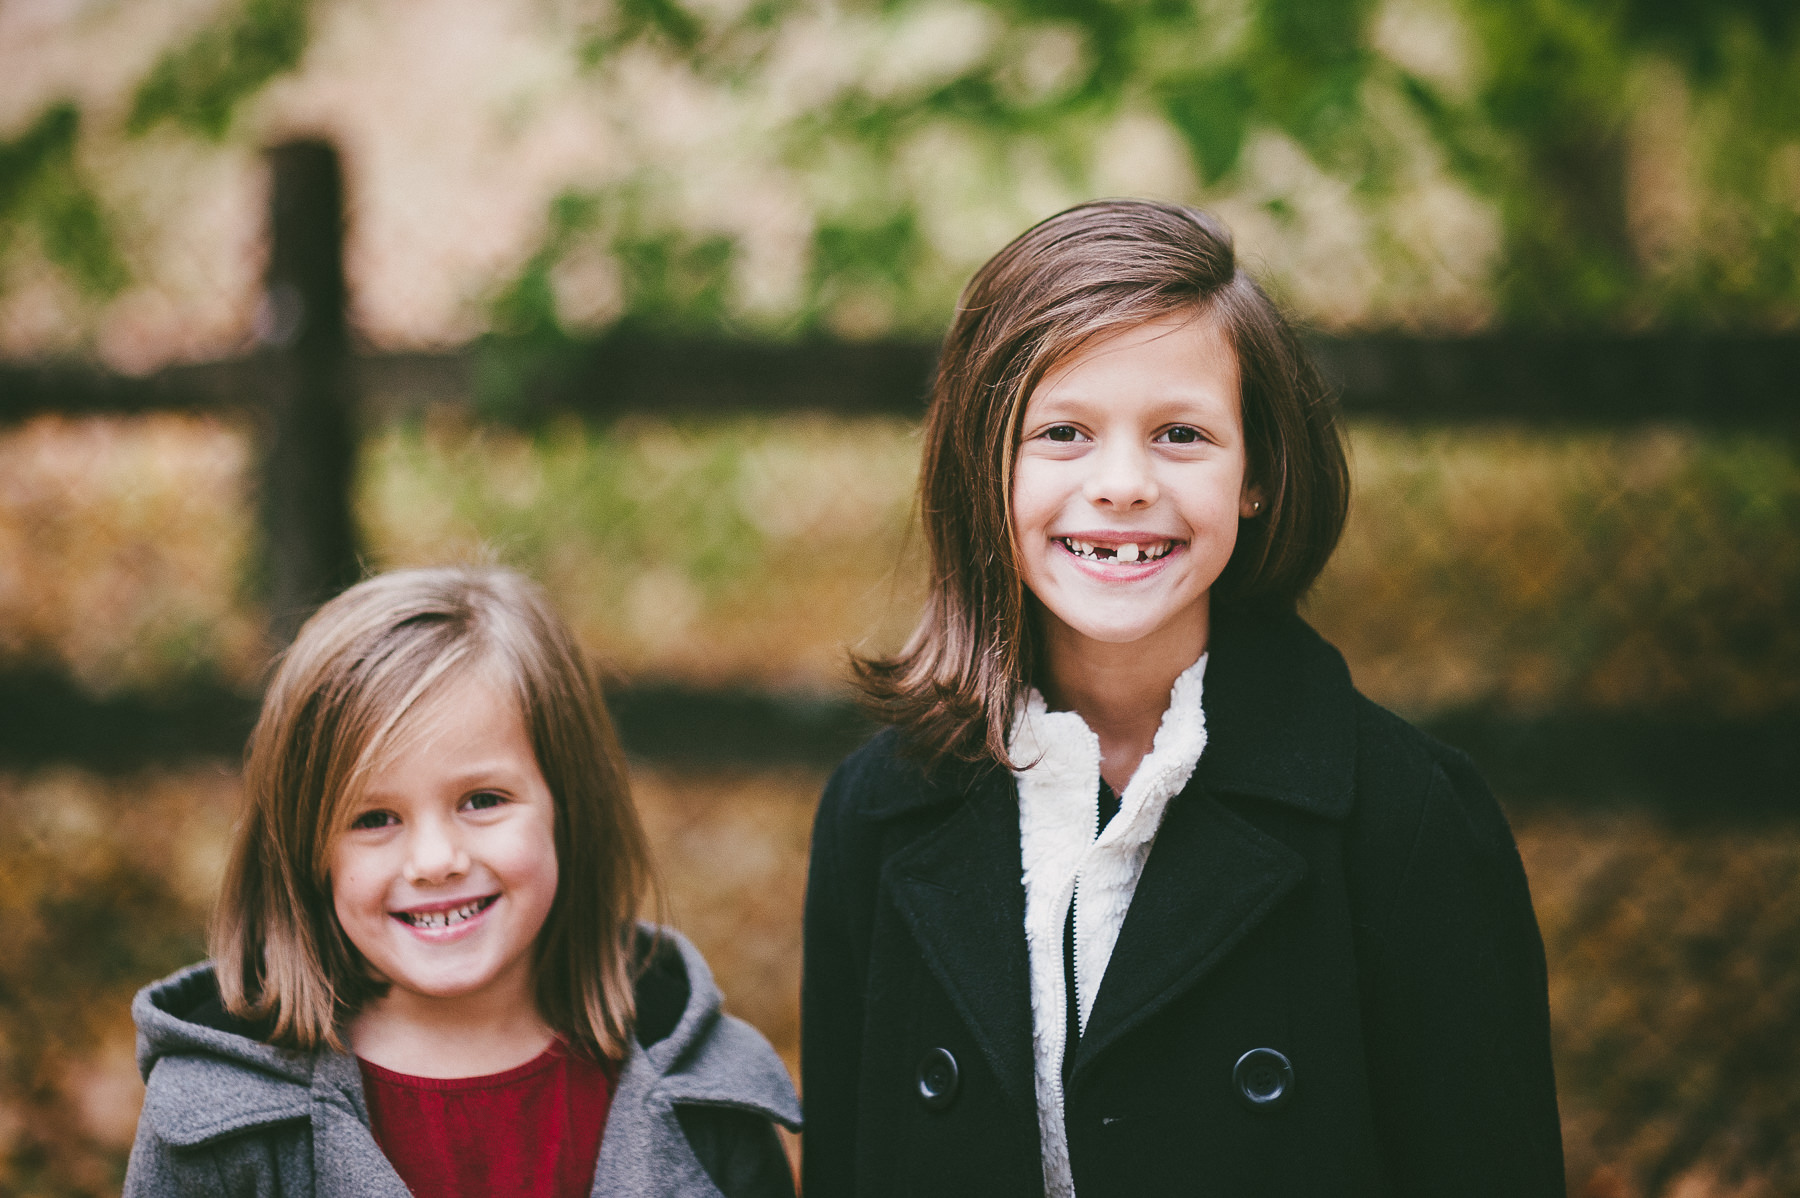 breighton-and-basette-photography-copyrighted-image-blog-betty-chad-and-company-family-shoot-011.jpg